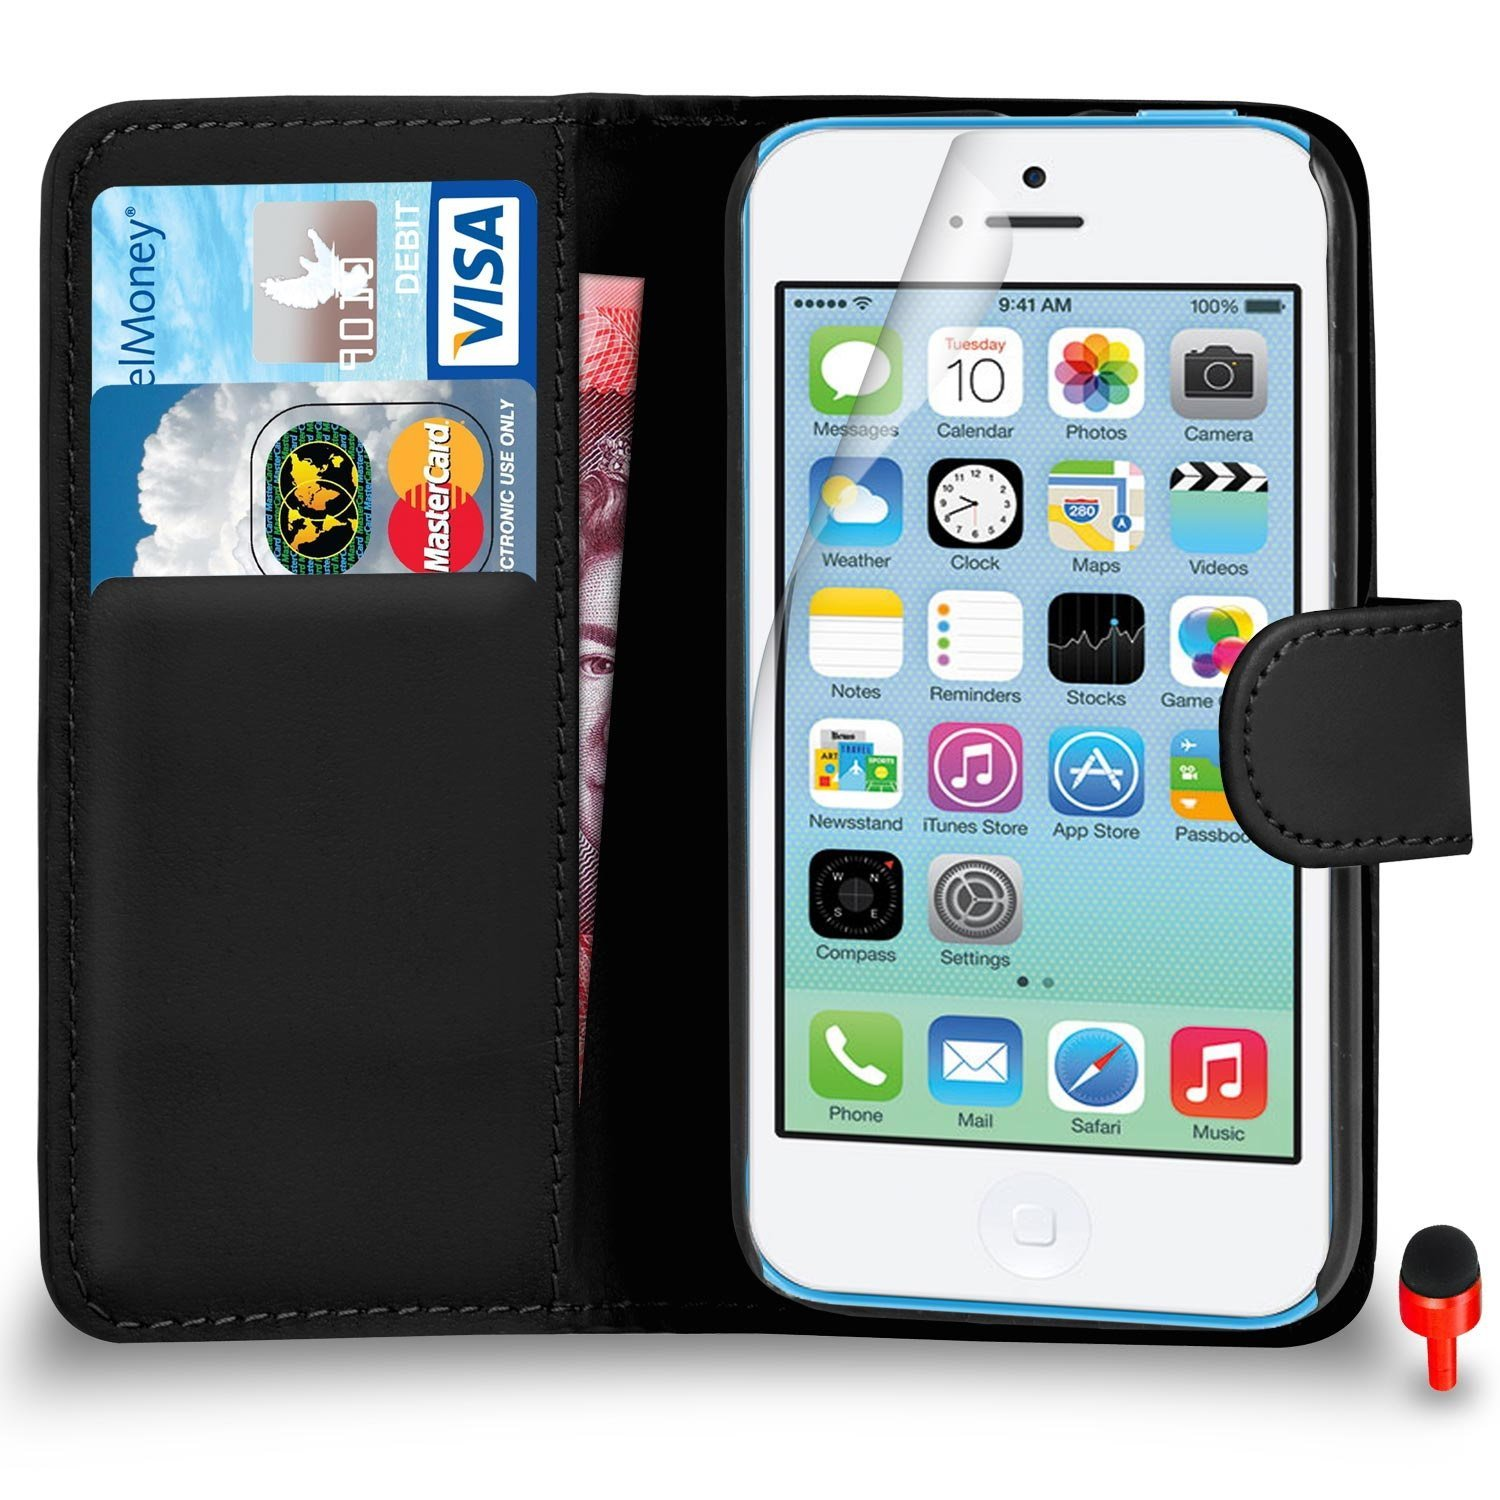 Apple iPhone 5C Premium Leather Black Wallet Flip Case Cover PouchRED DS+ Screen Protector & Polishing Cloth SVL0 BY SHUKAN®, (WALLET BLACK)